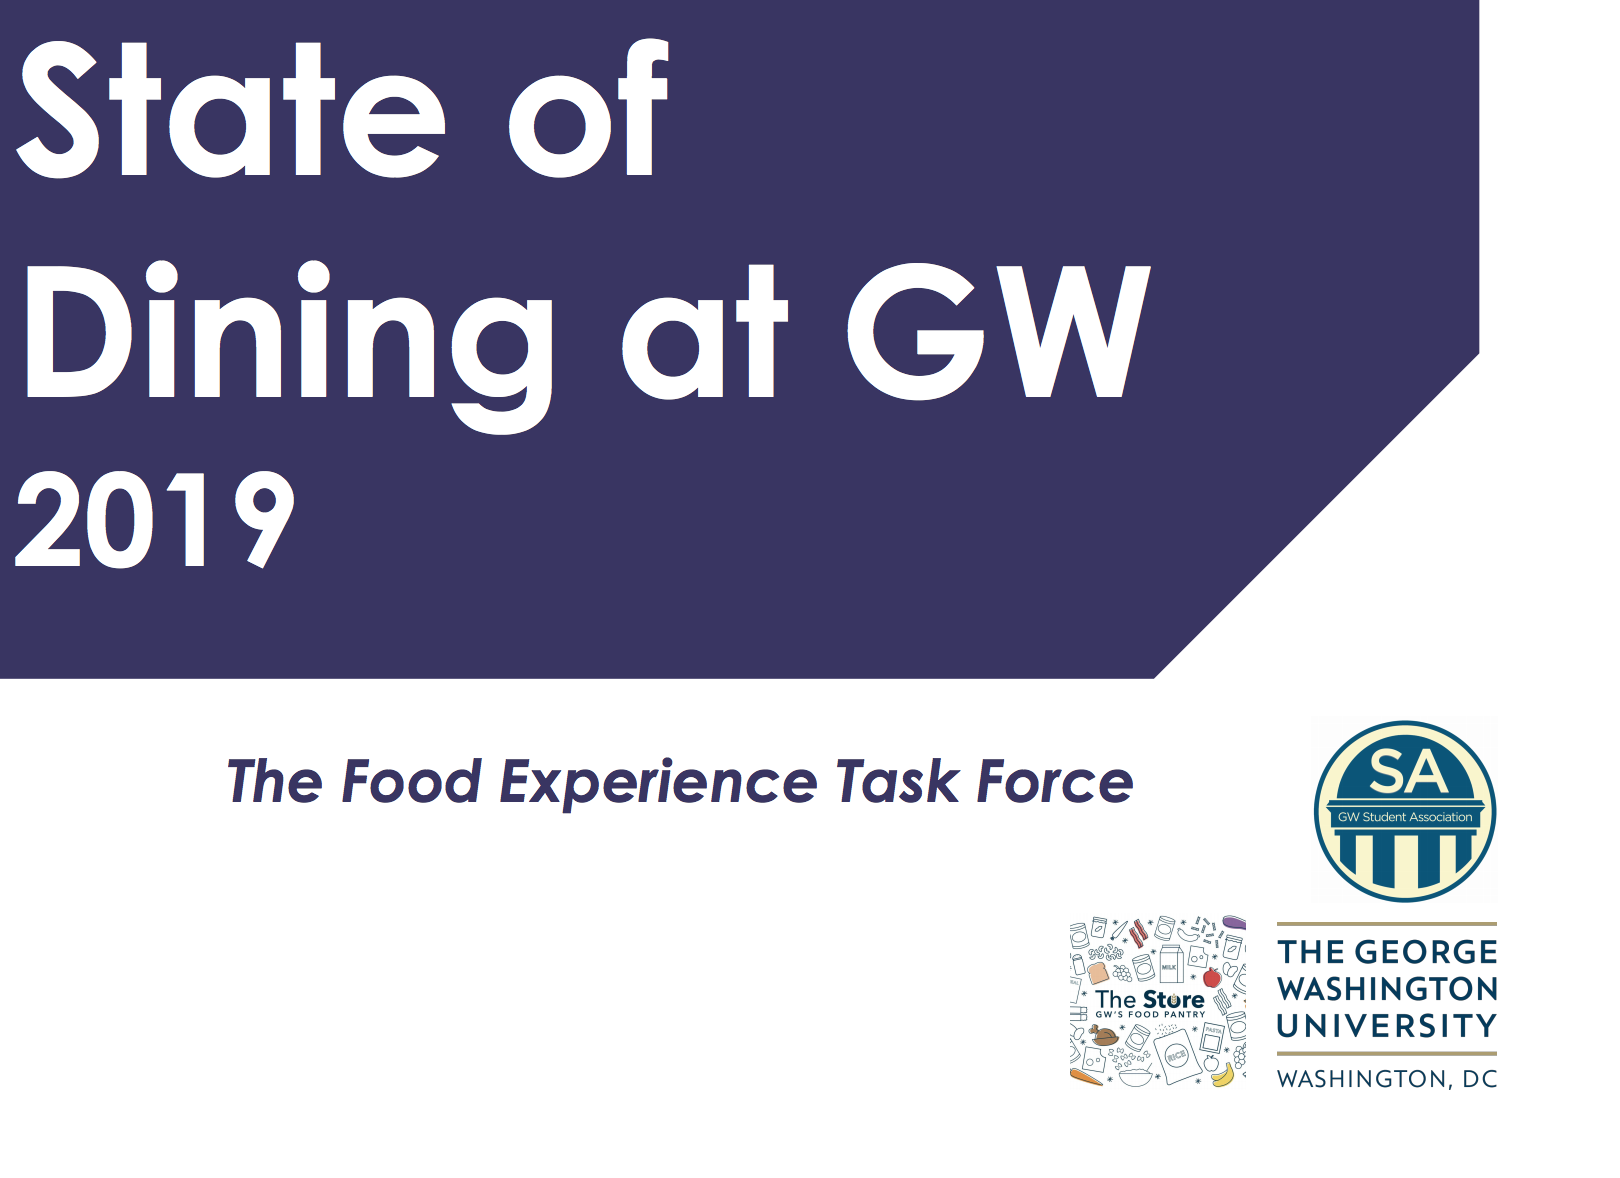 State of Dining at GW Report graphic